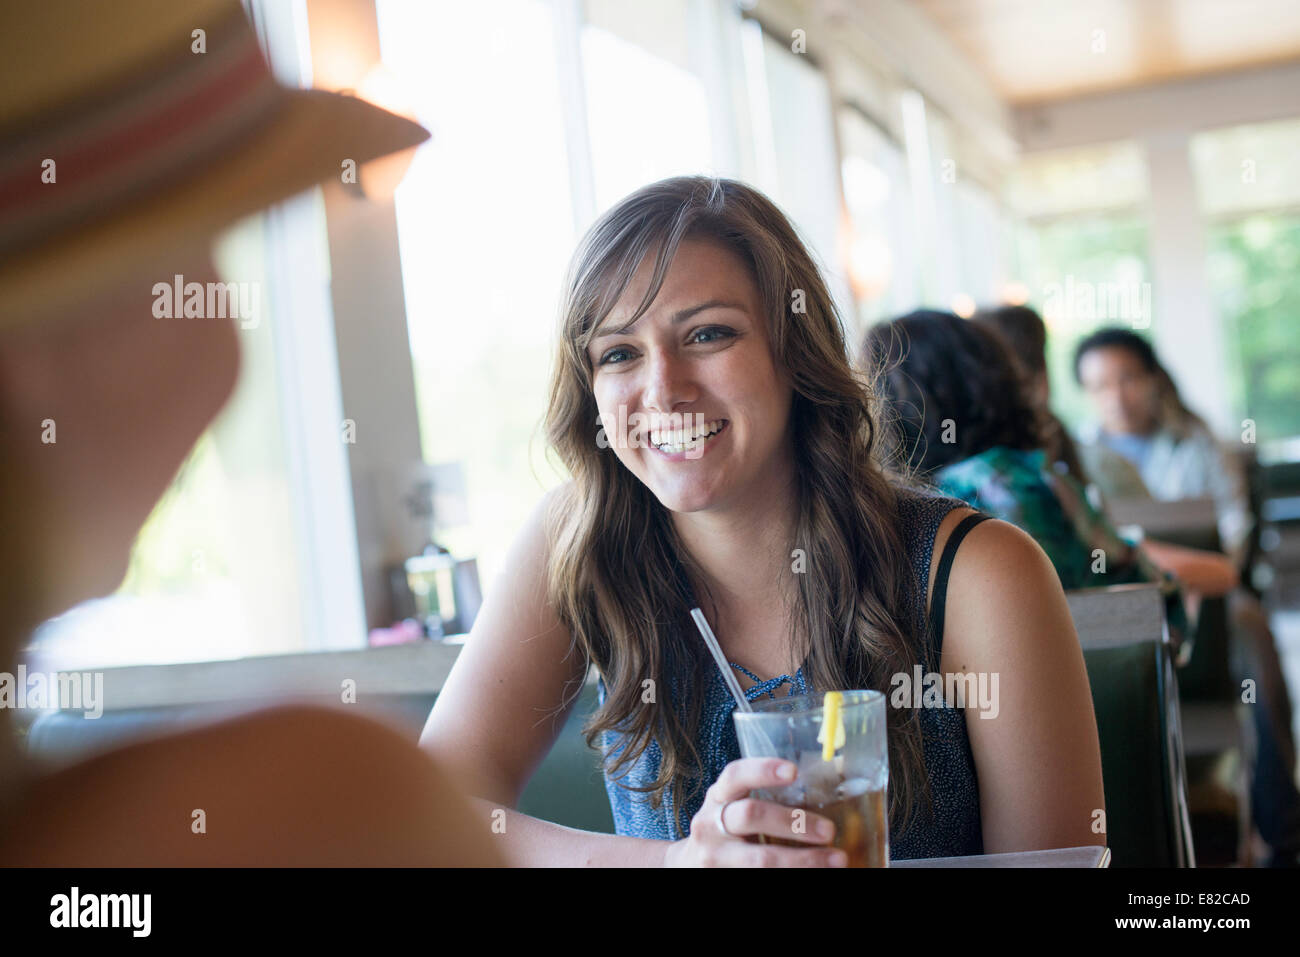 A woman sitting at a diner table holding a cool drink. - Stock Image